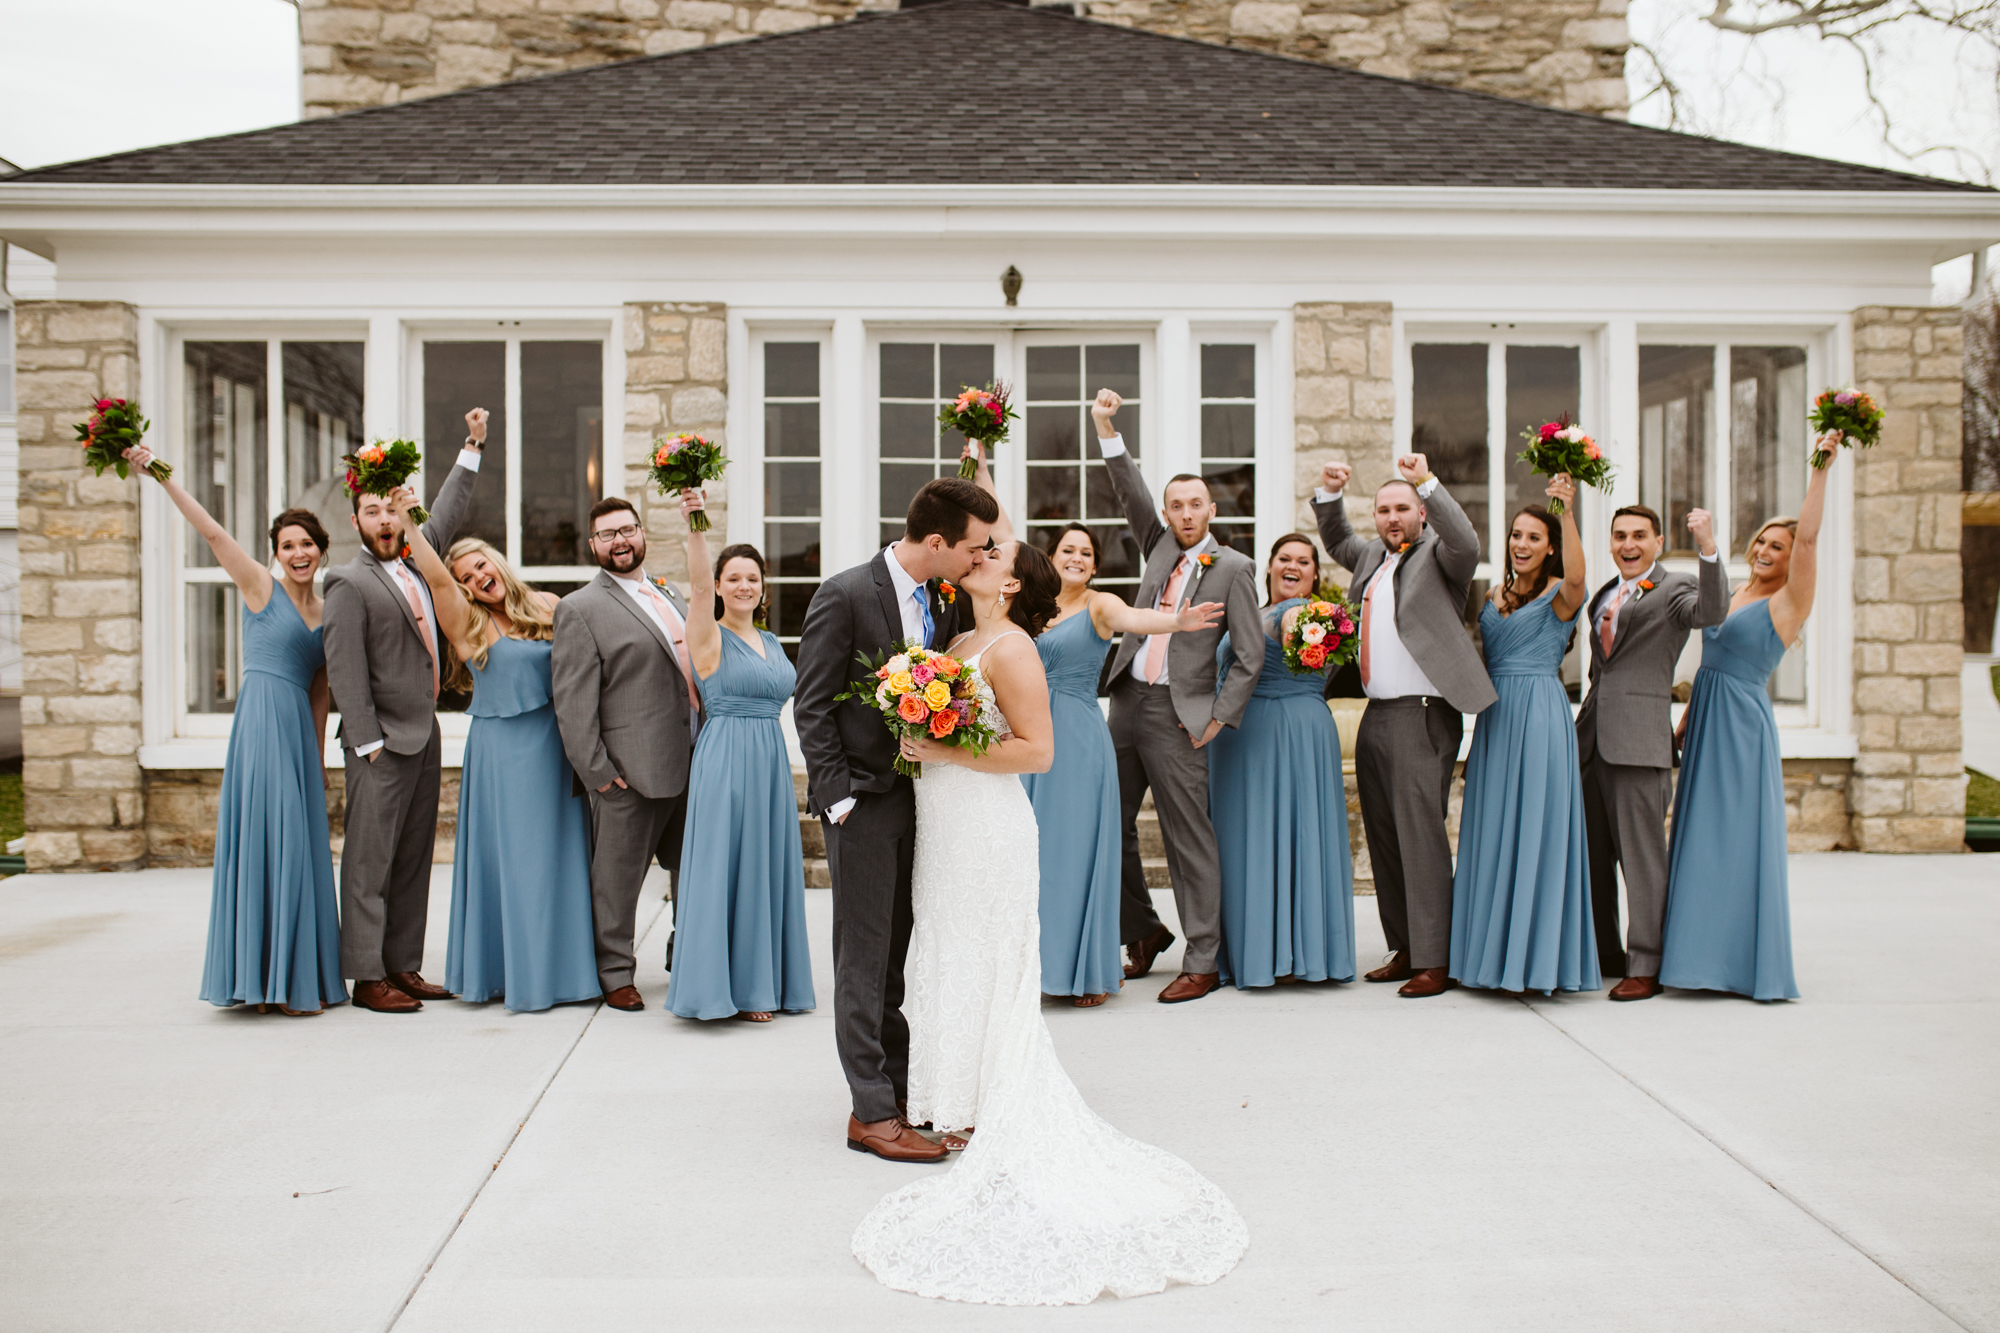 Bridal party portraits at stone house of st charles